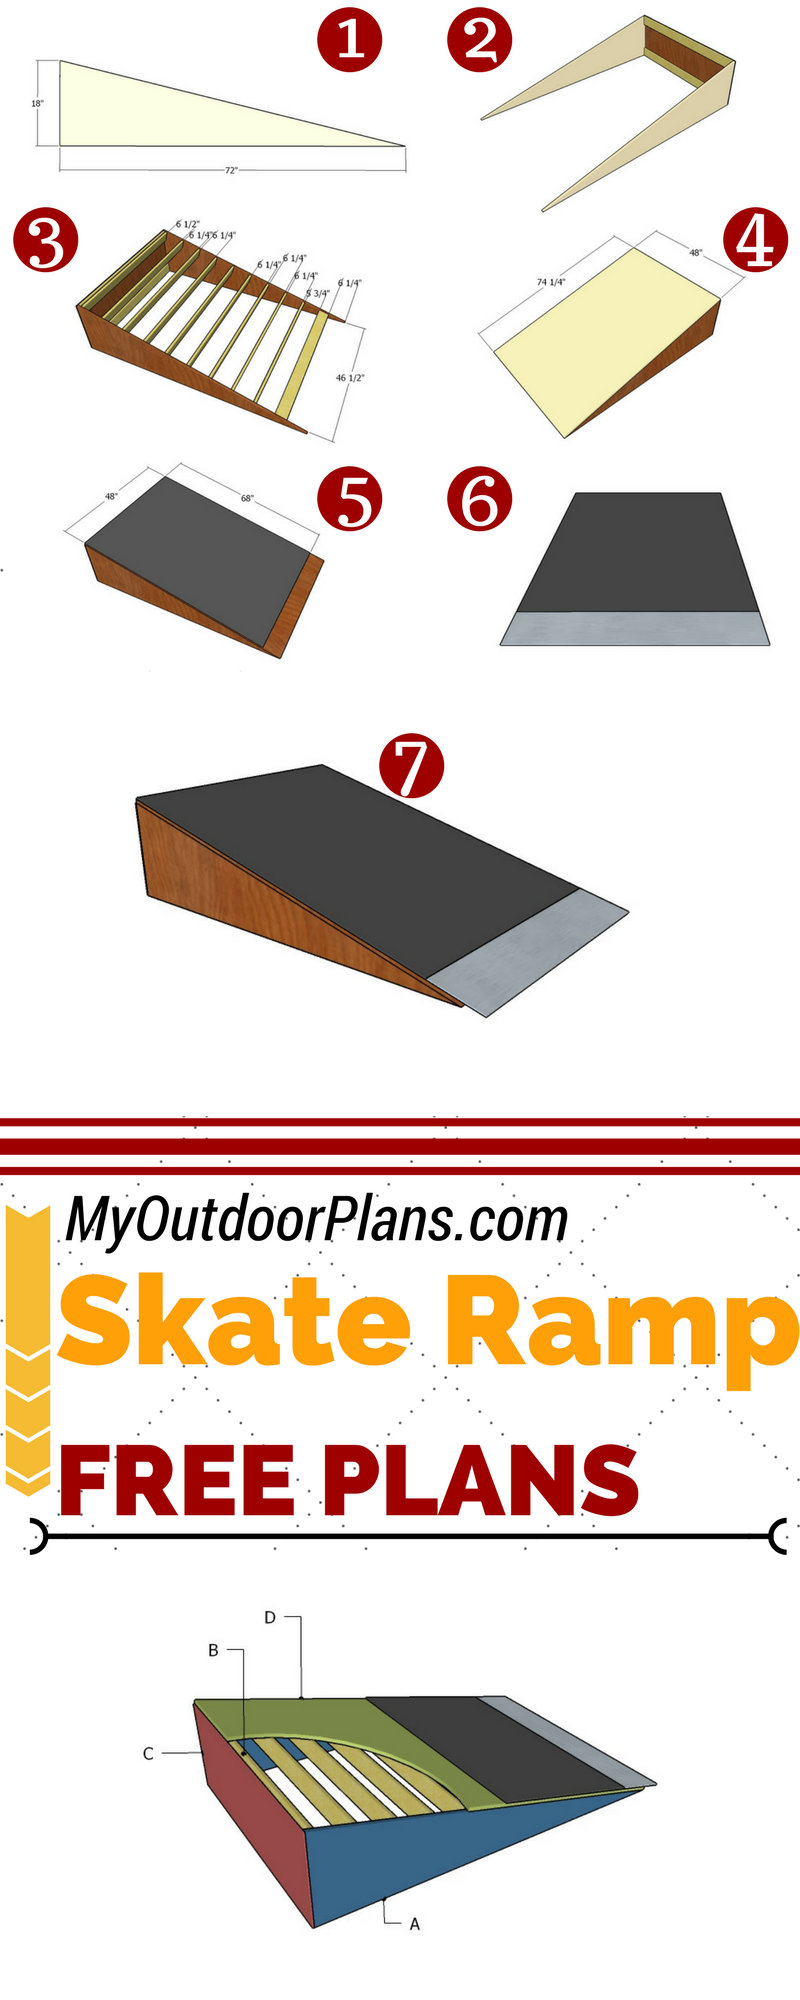 build a simple skate ramp for fun in the backyard or in the park